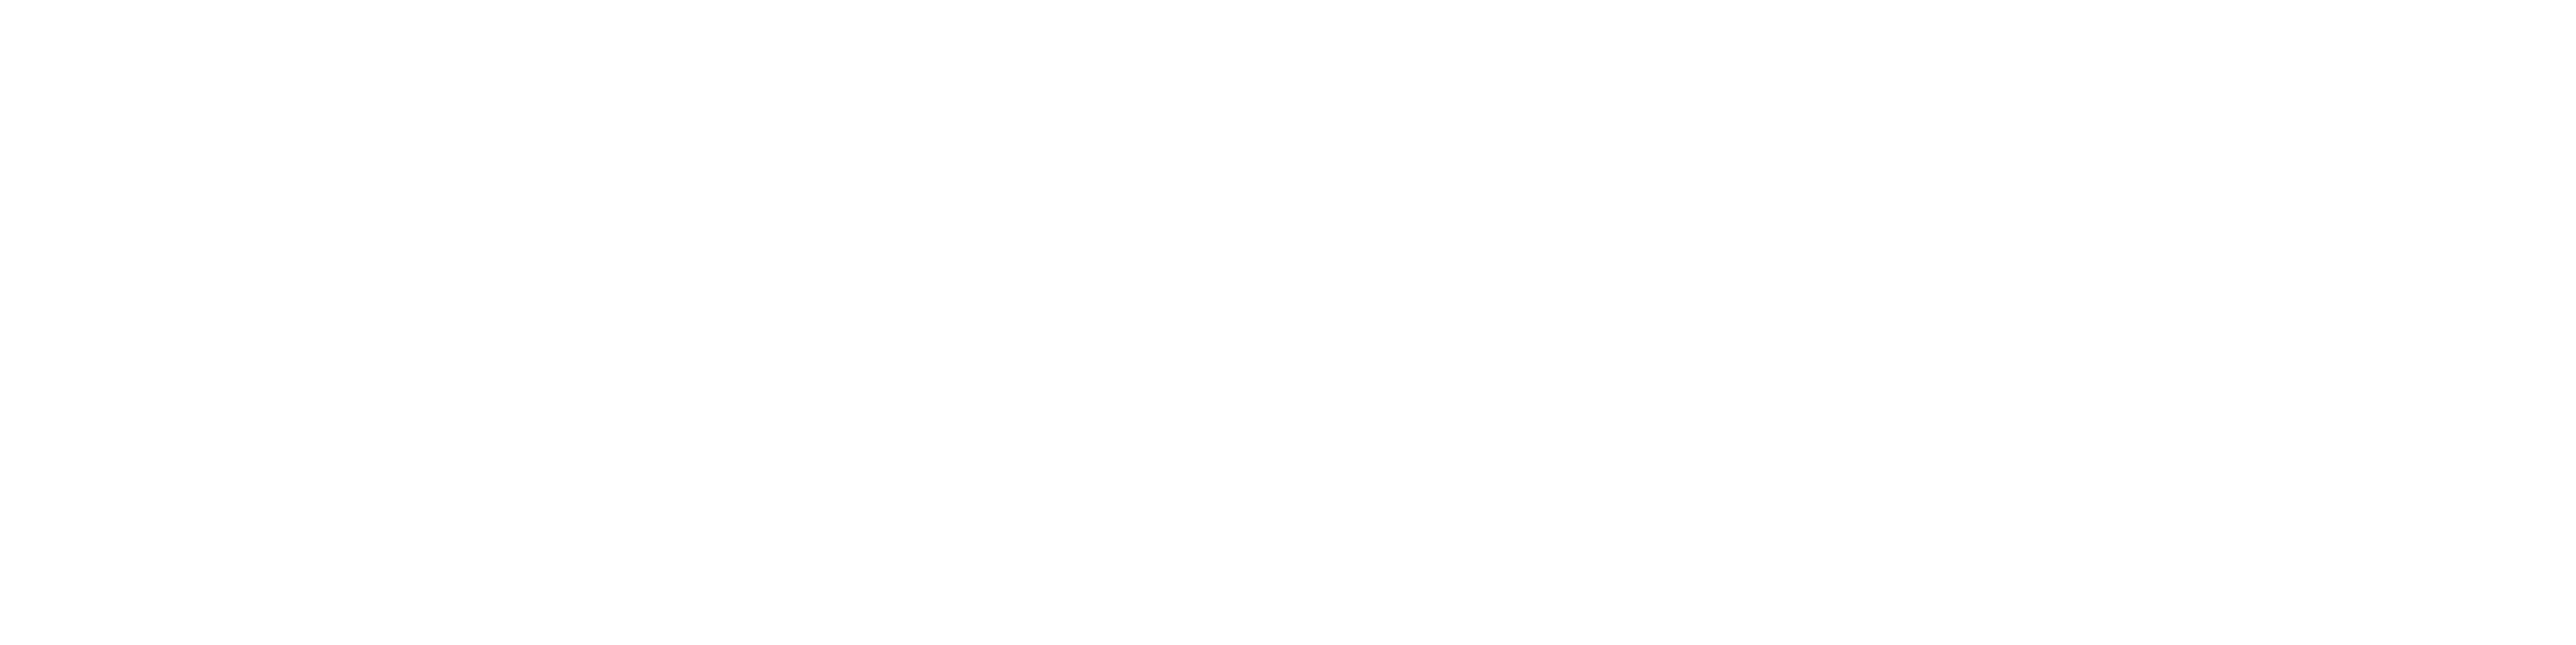 Crown Jewelers of Naples